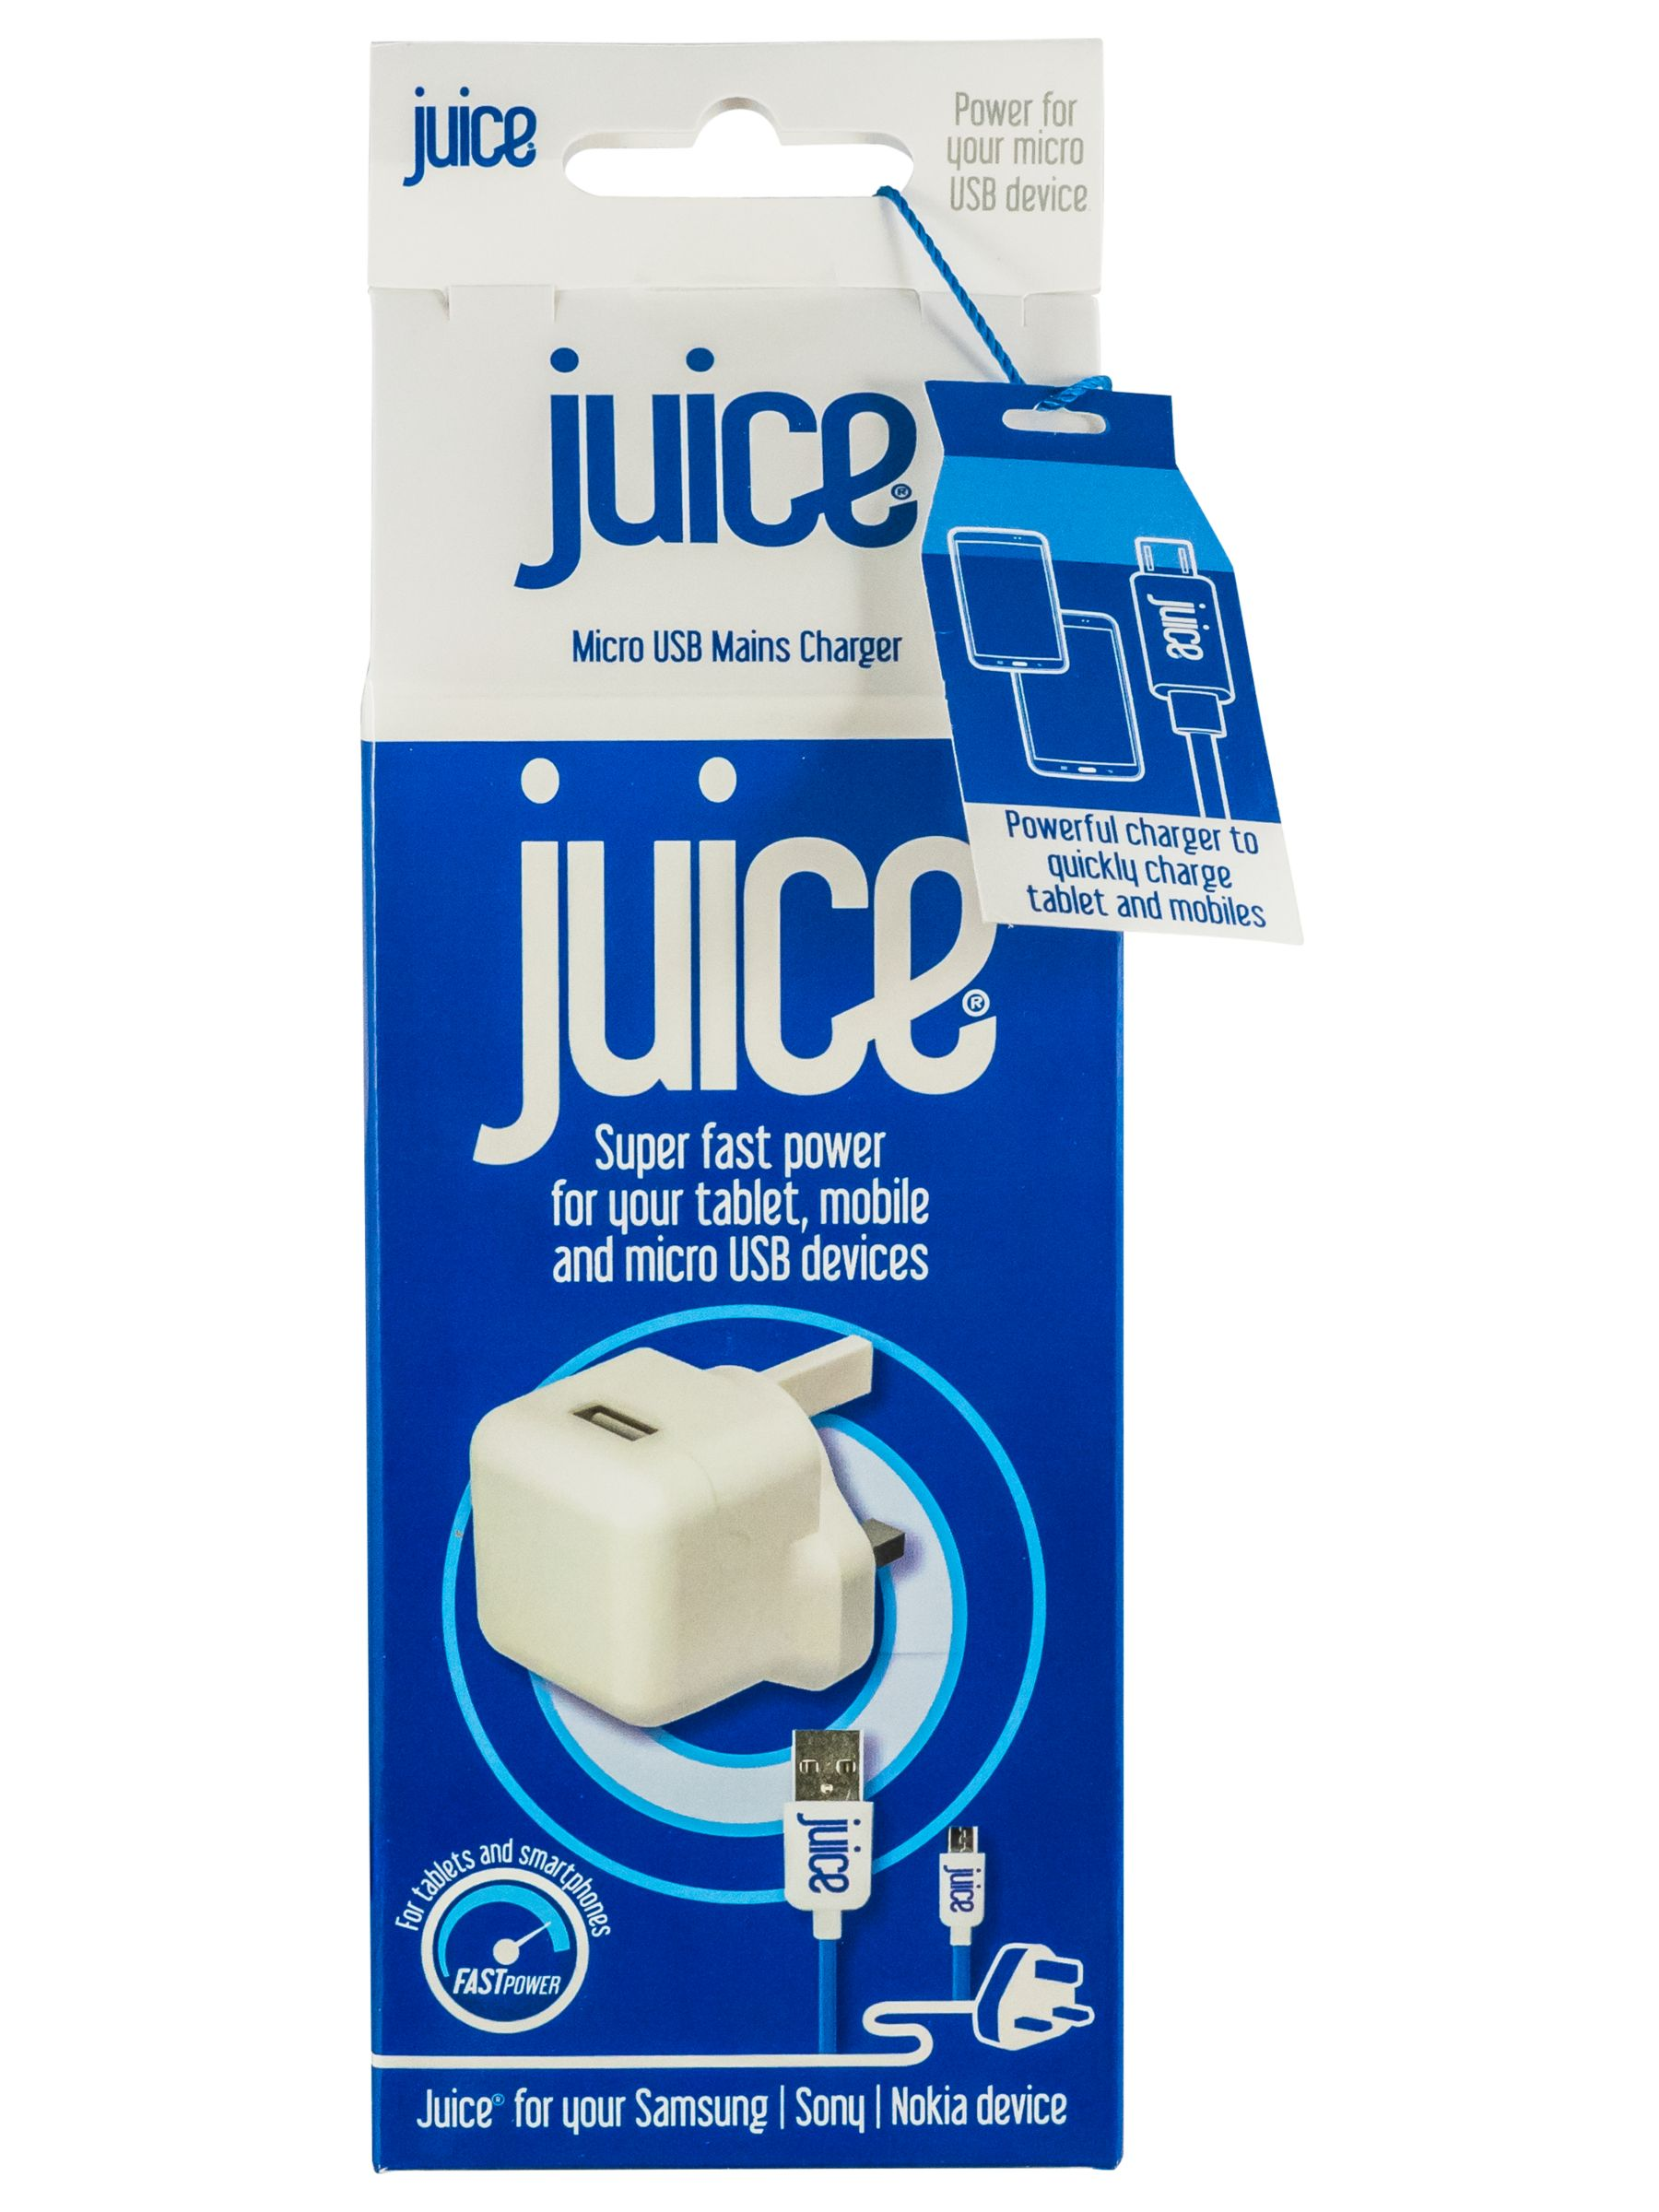 Juice Juice Blackberry Juice Home Charger for Micro USB Devices